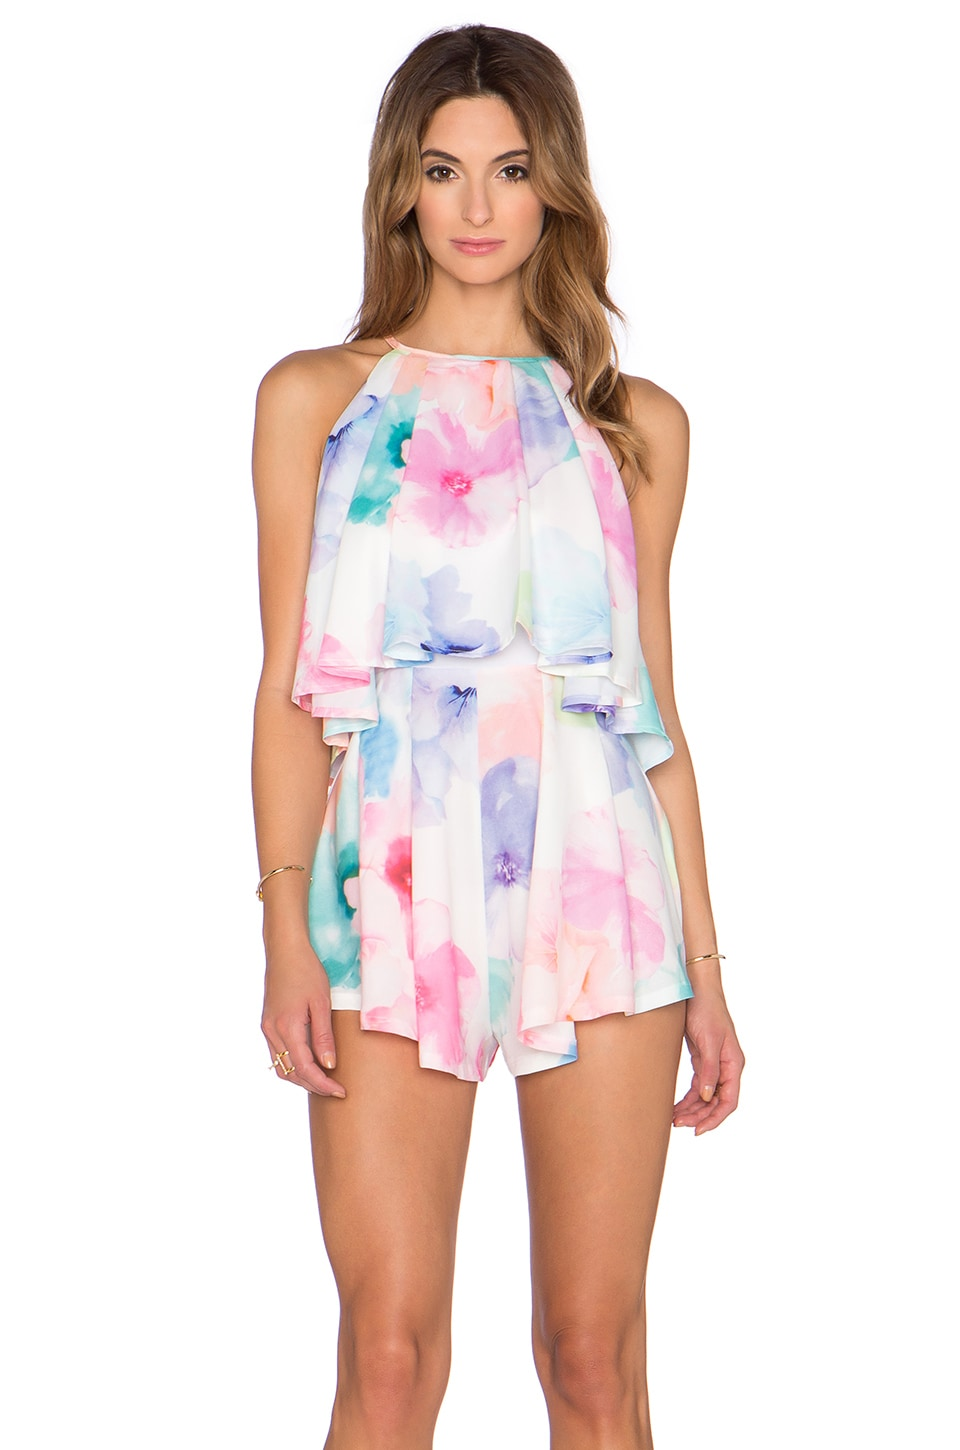 tiger Mist Sweetheart Playsuit in Pastel